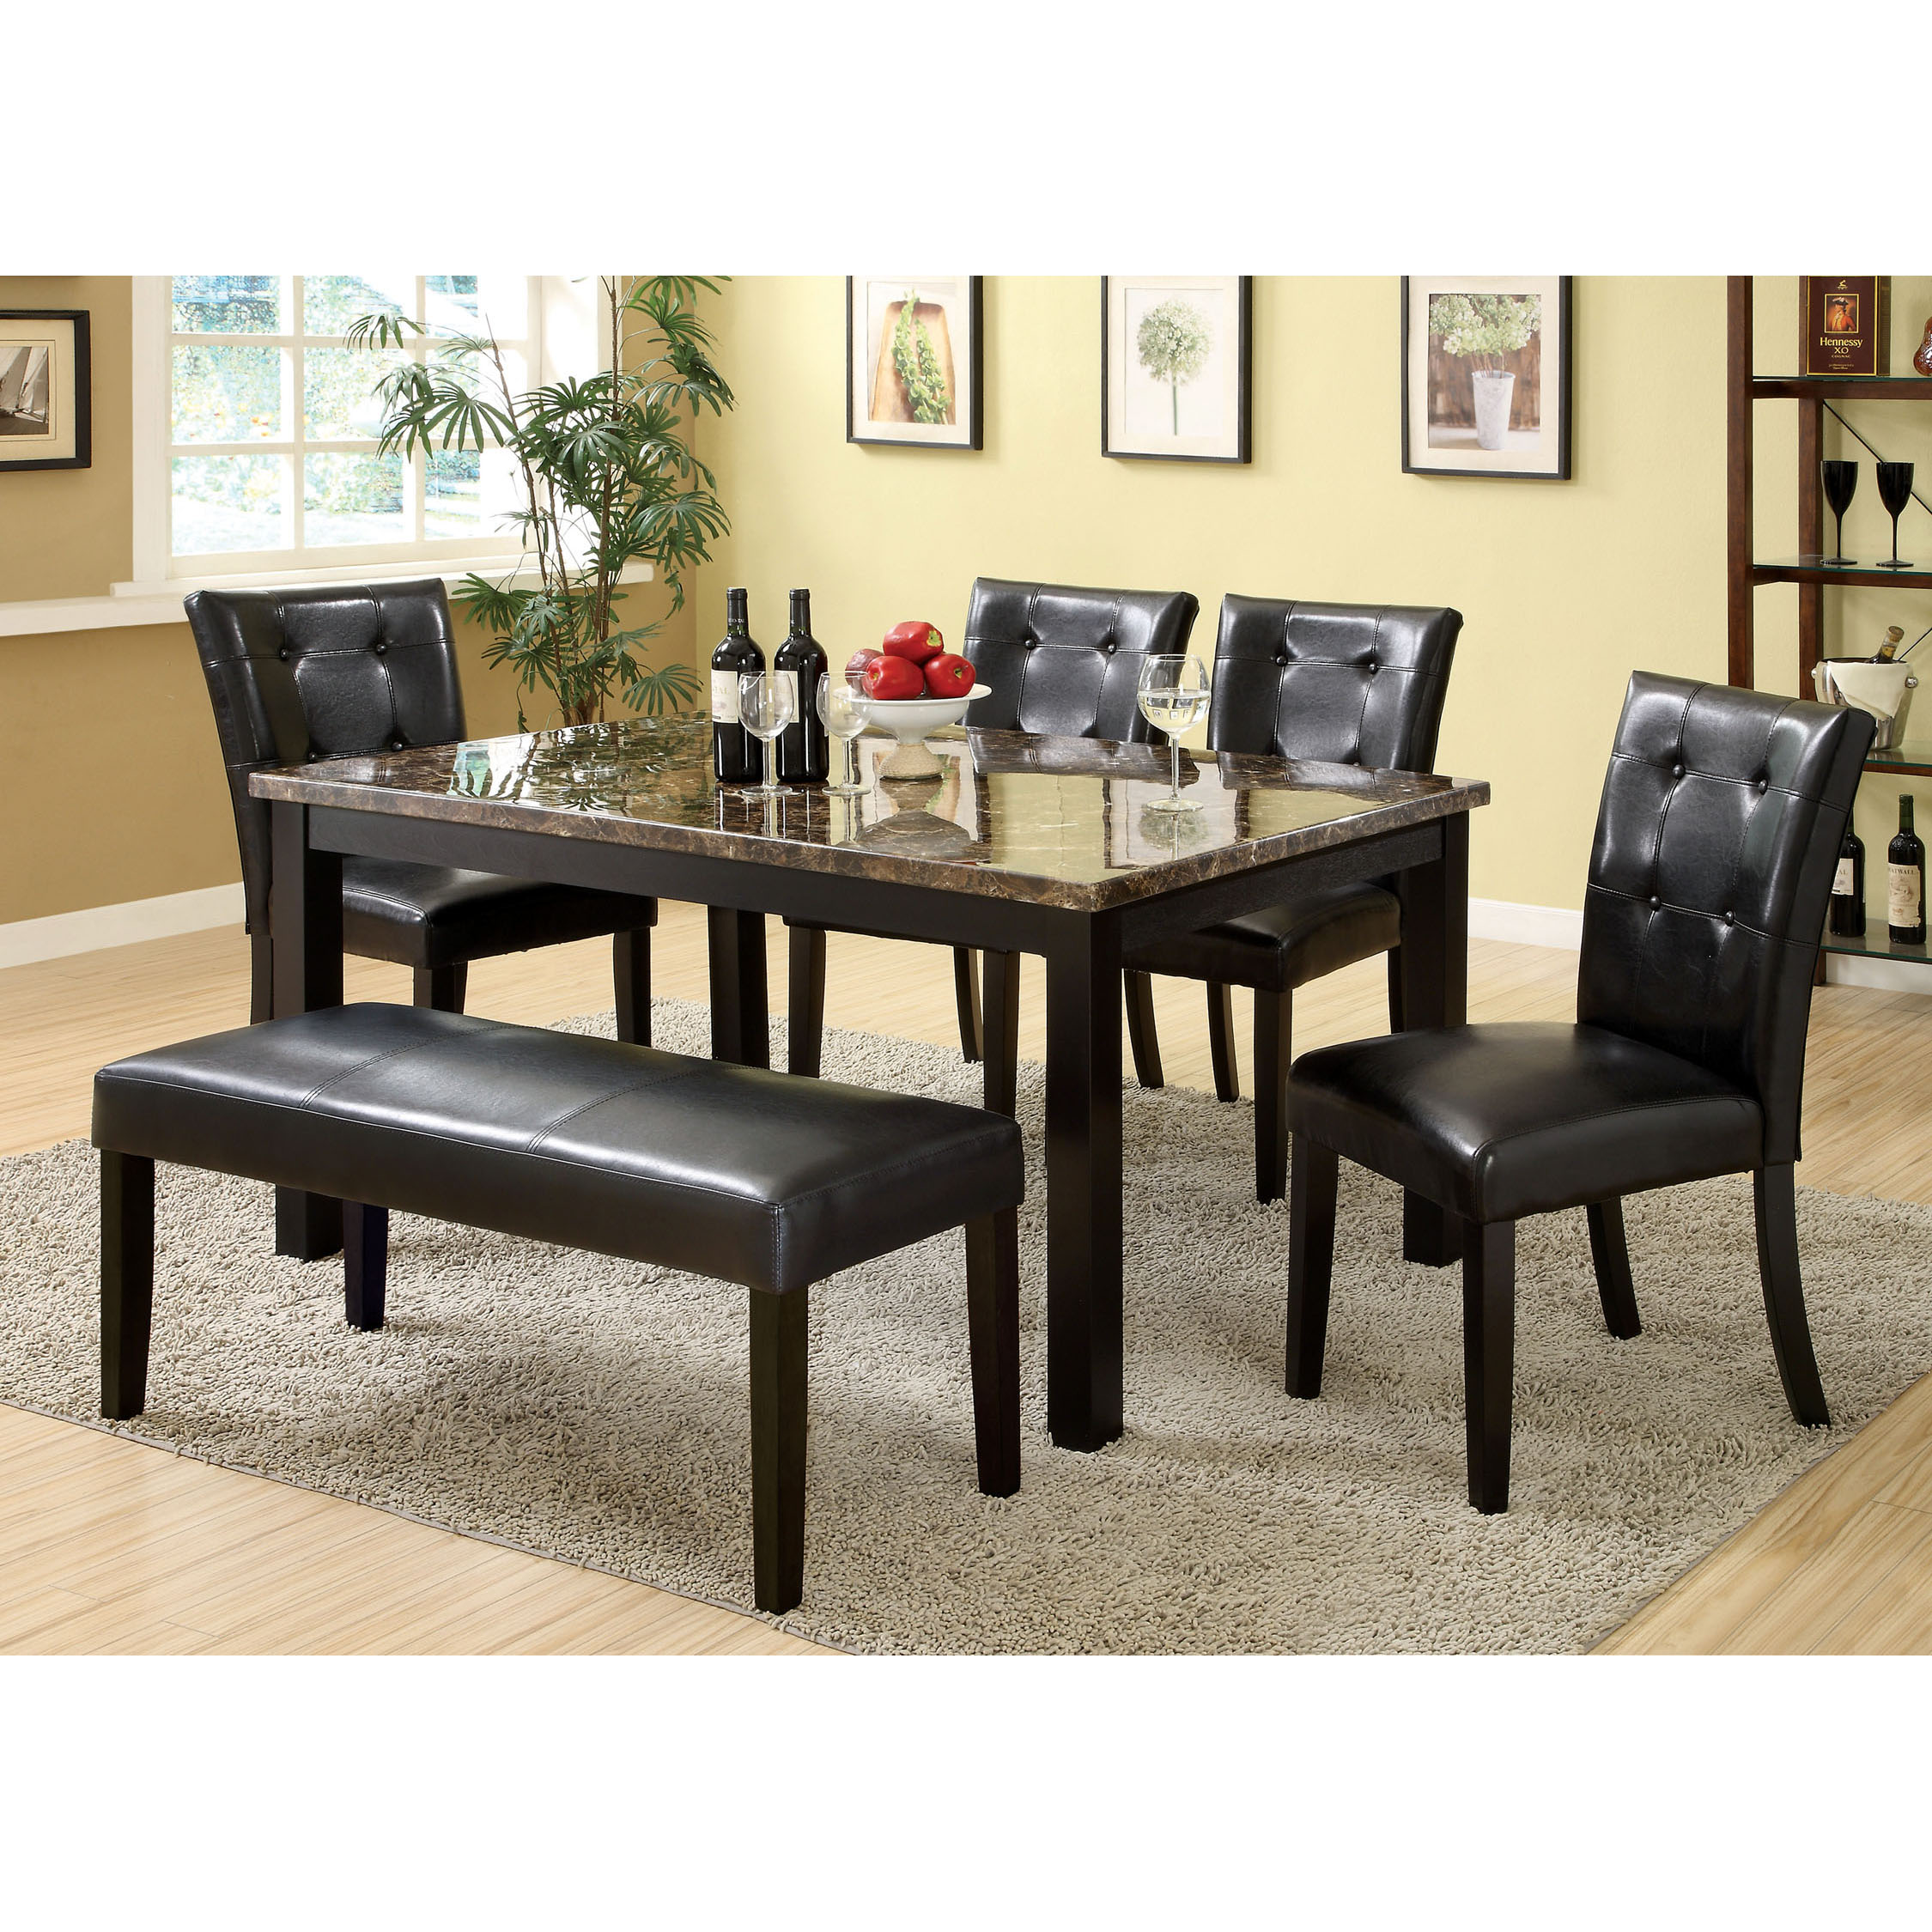 Furniture Of America Benning Heights 6 Piece Faux Marble Dining Set With  Bench